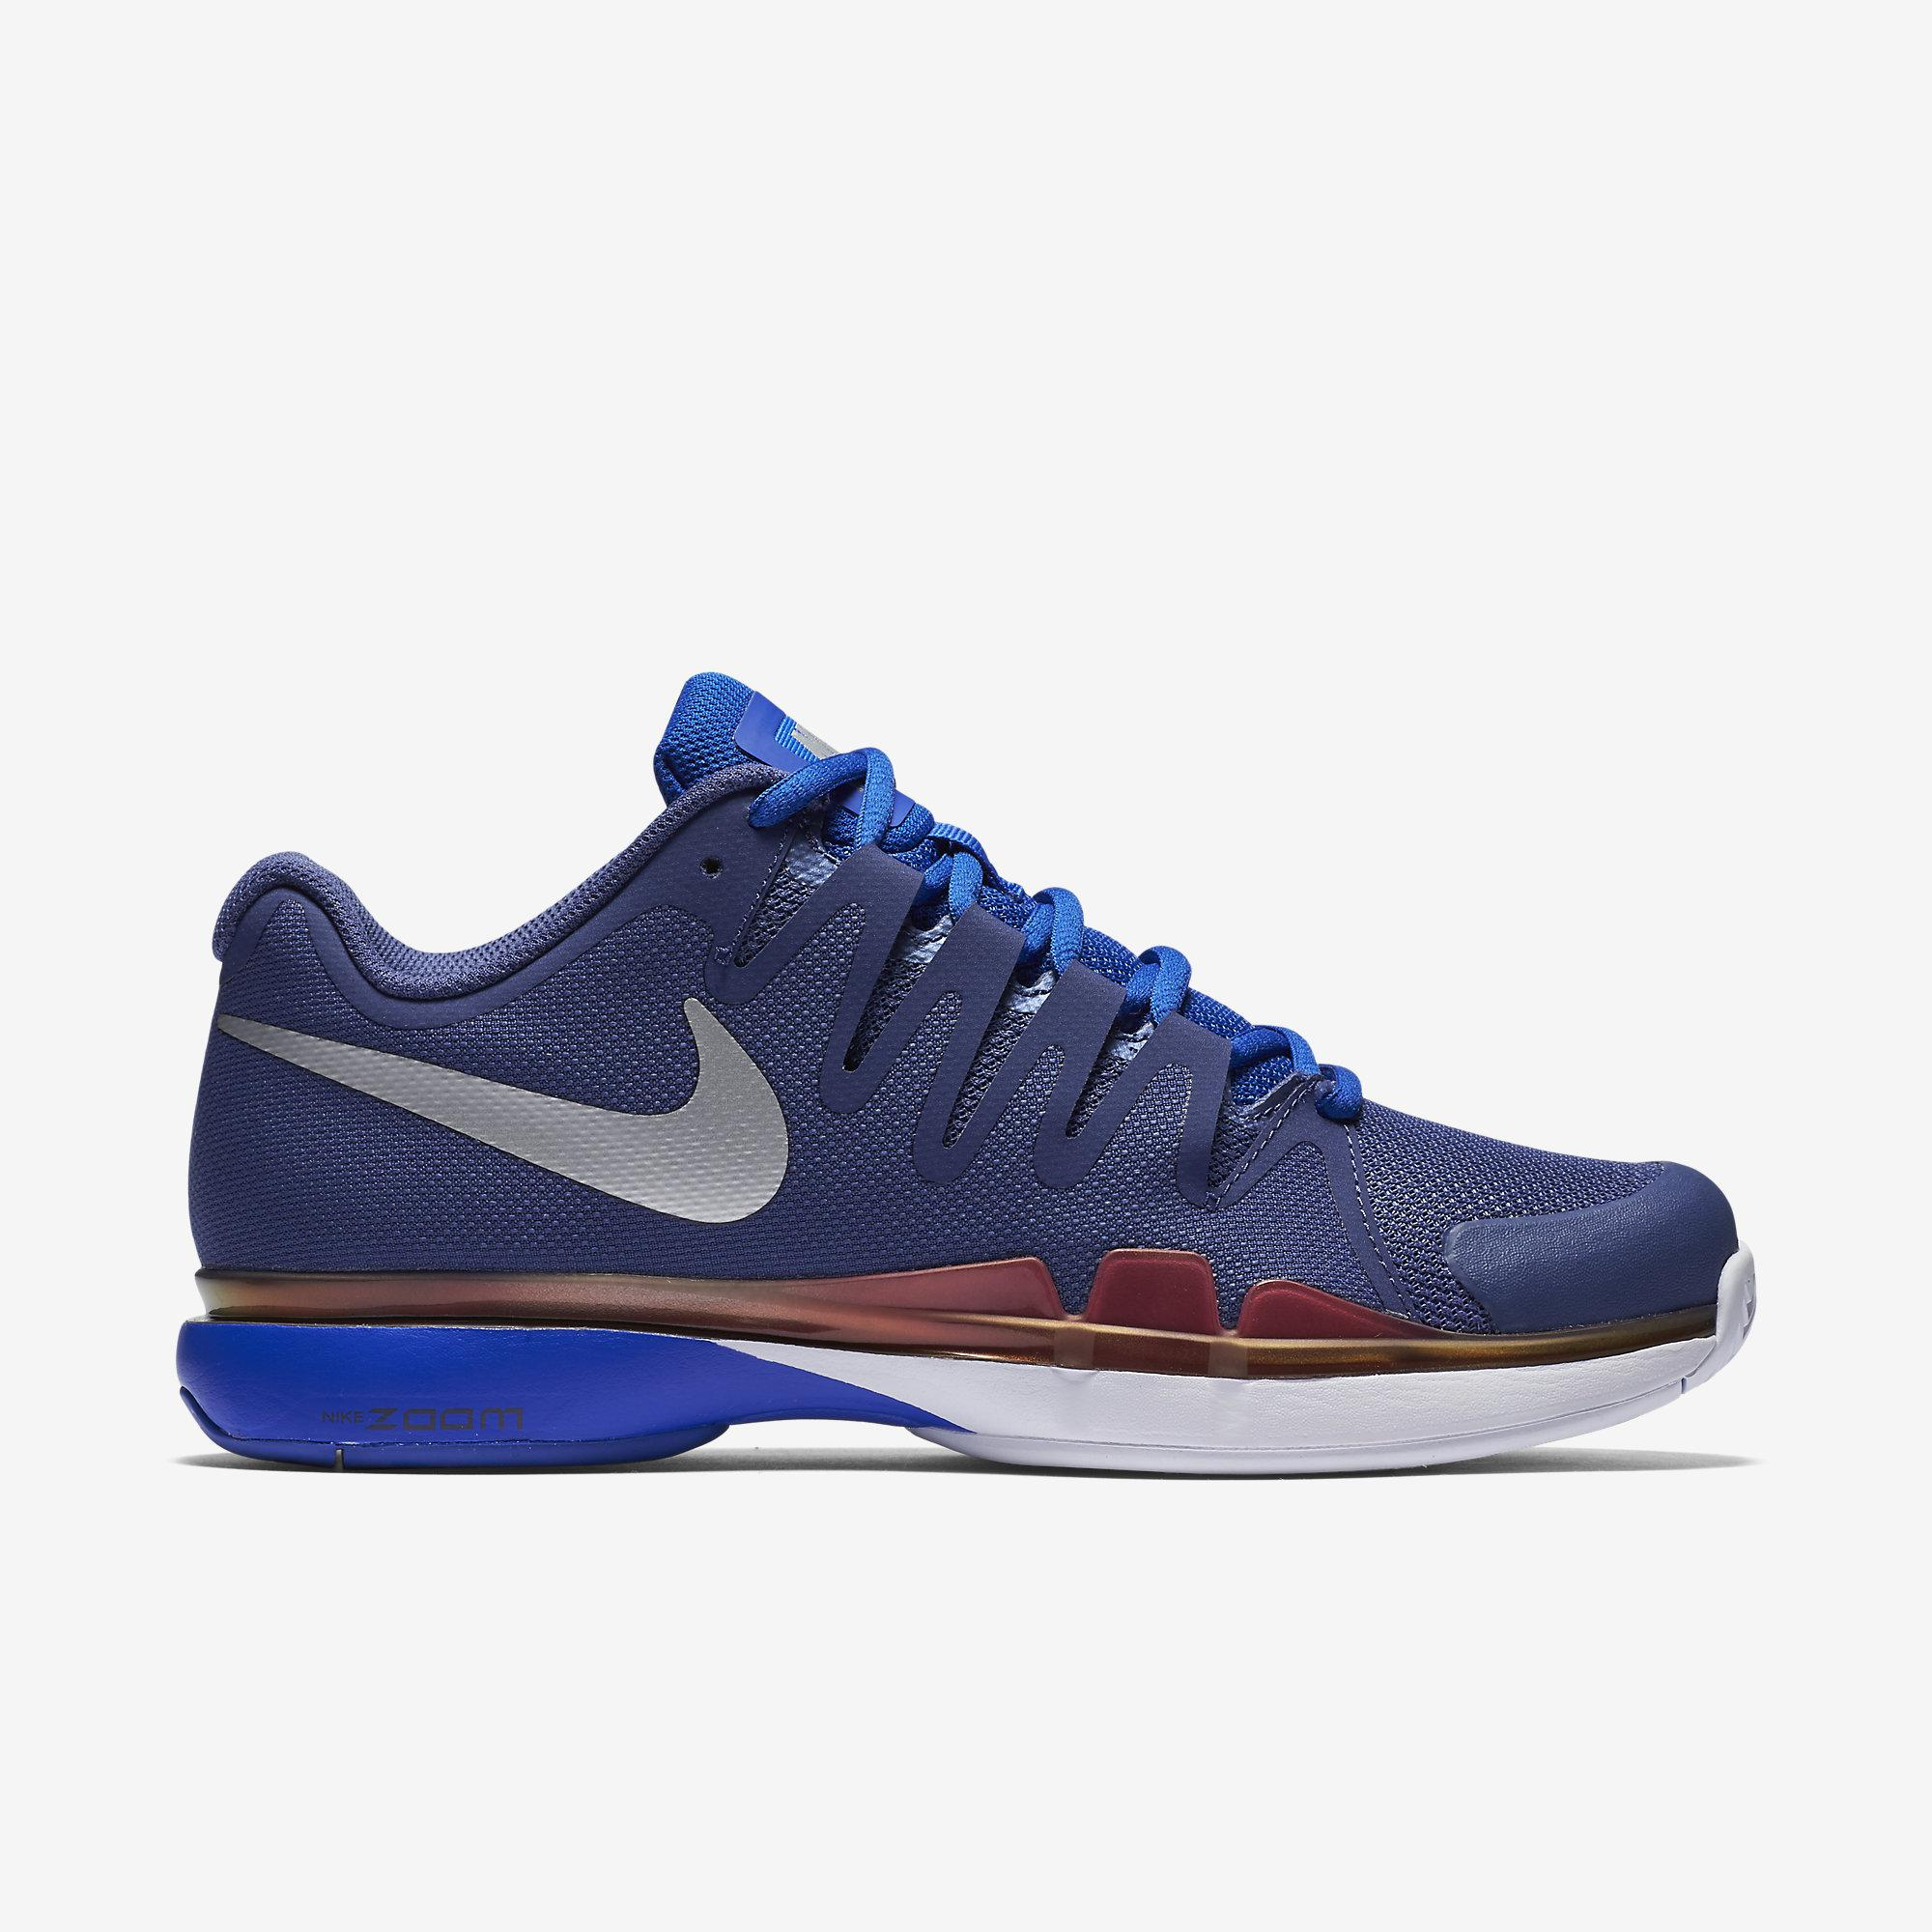 Nike Shoe Sizes Womens To Mens